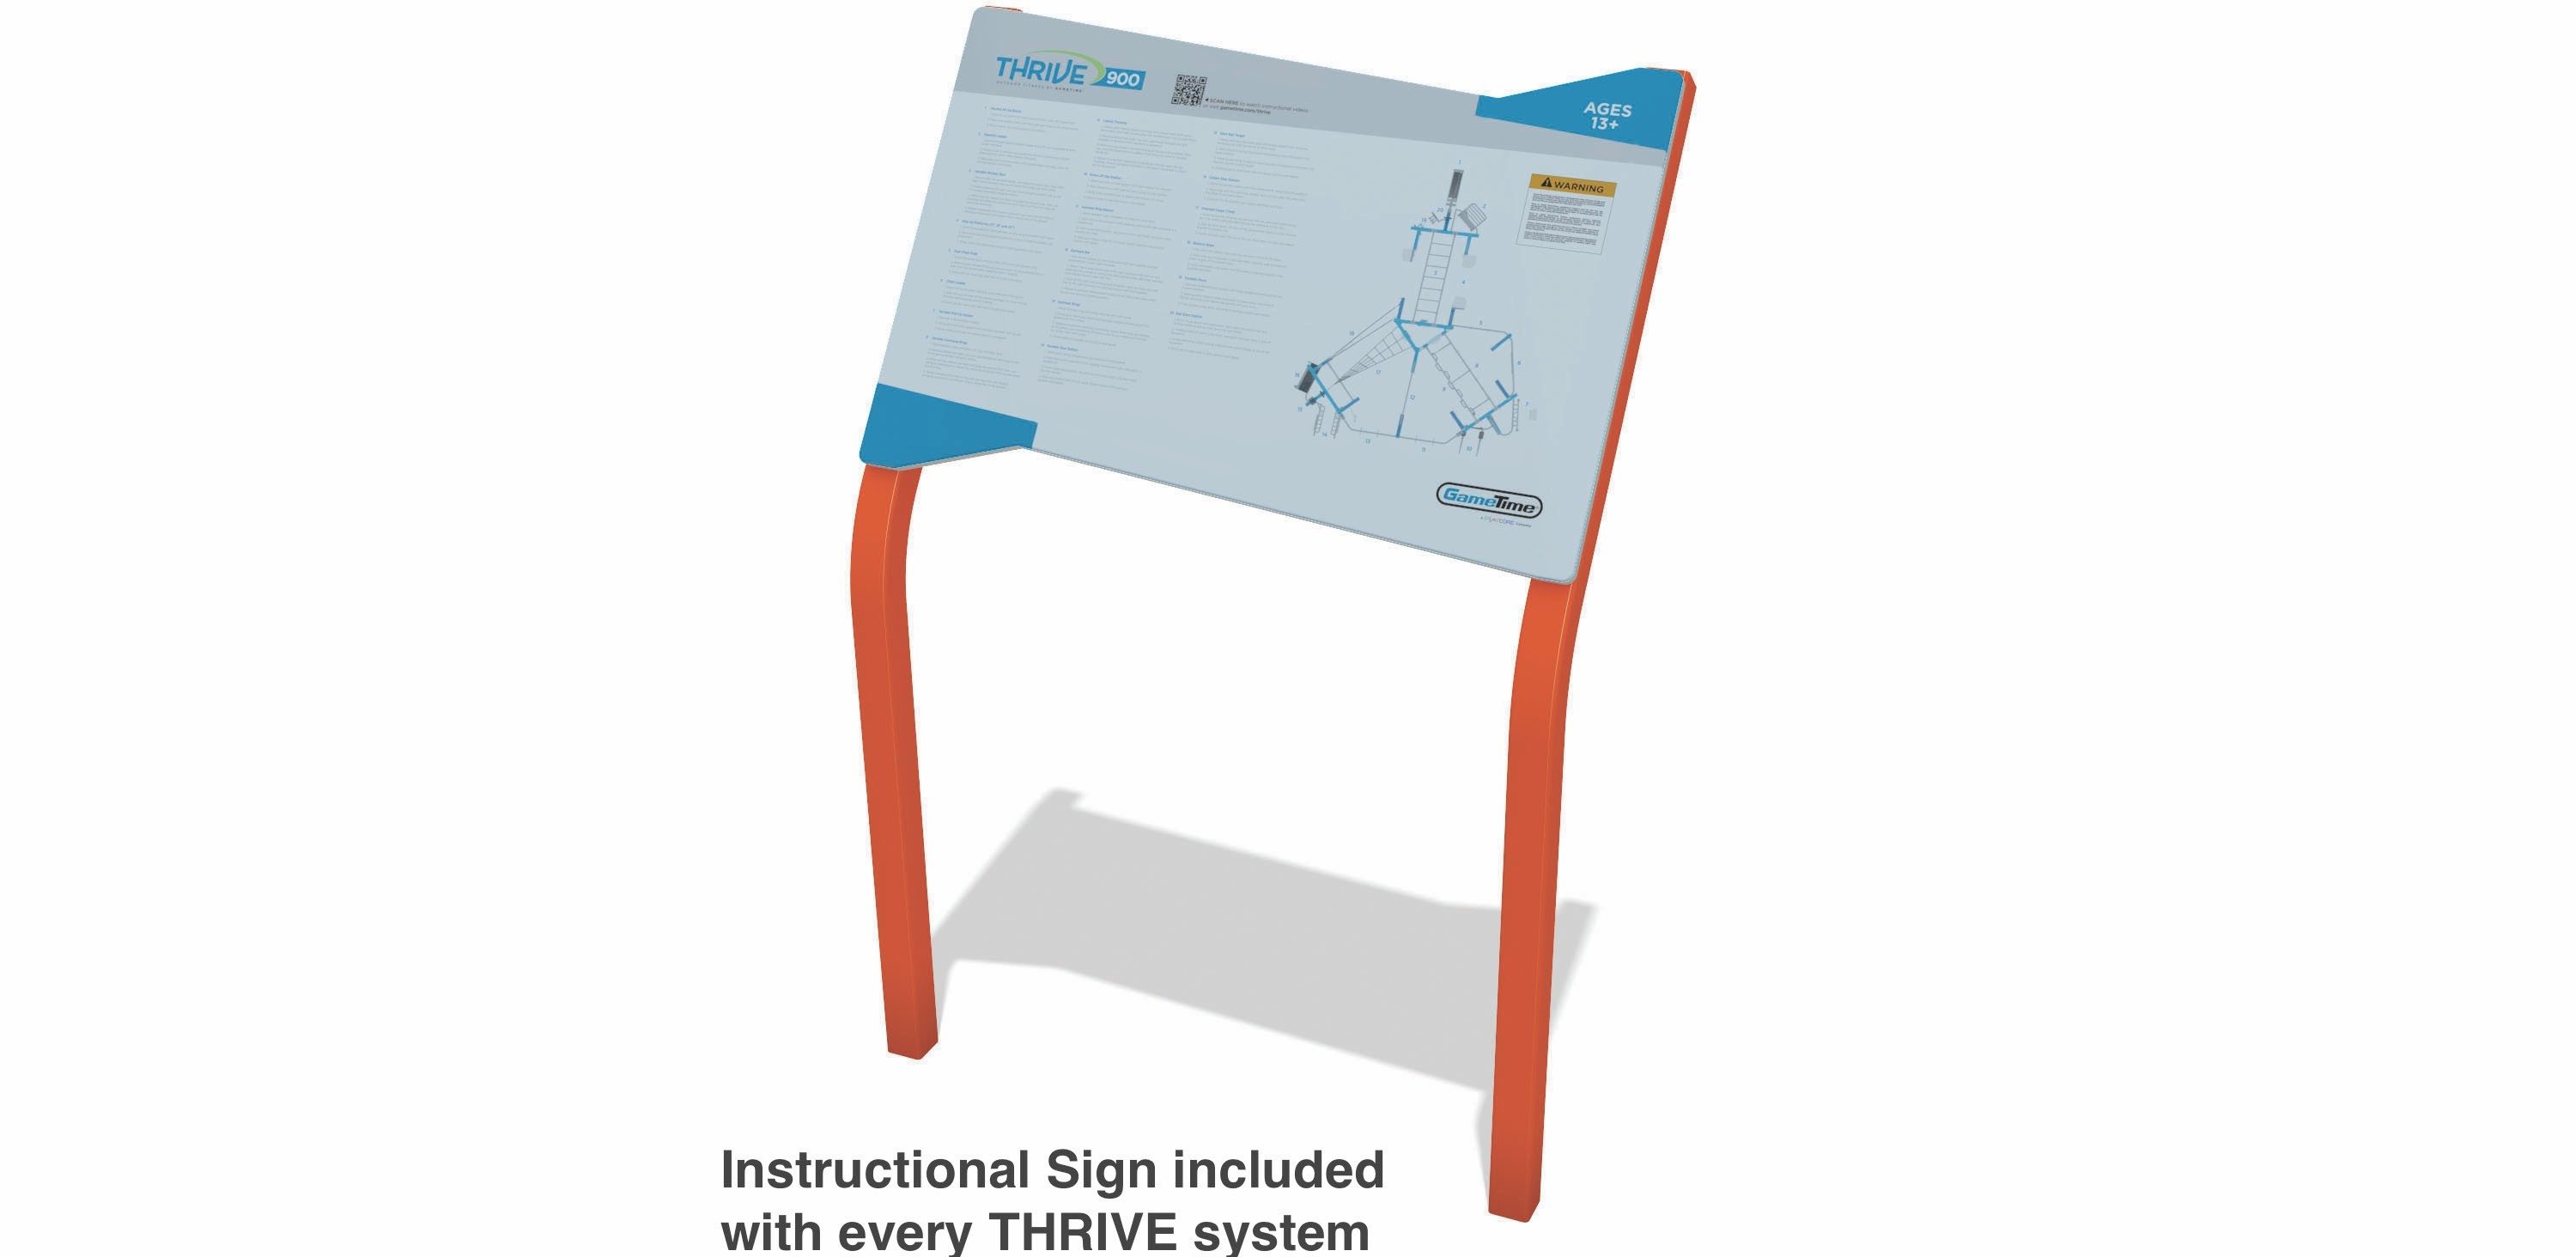 THRIVE 250 Outdoor Fitness Equipment Instructional Sign